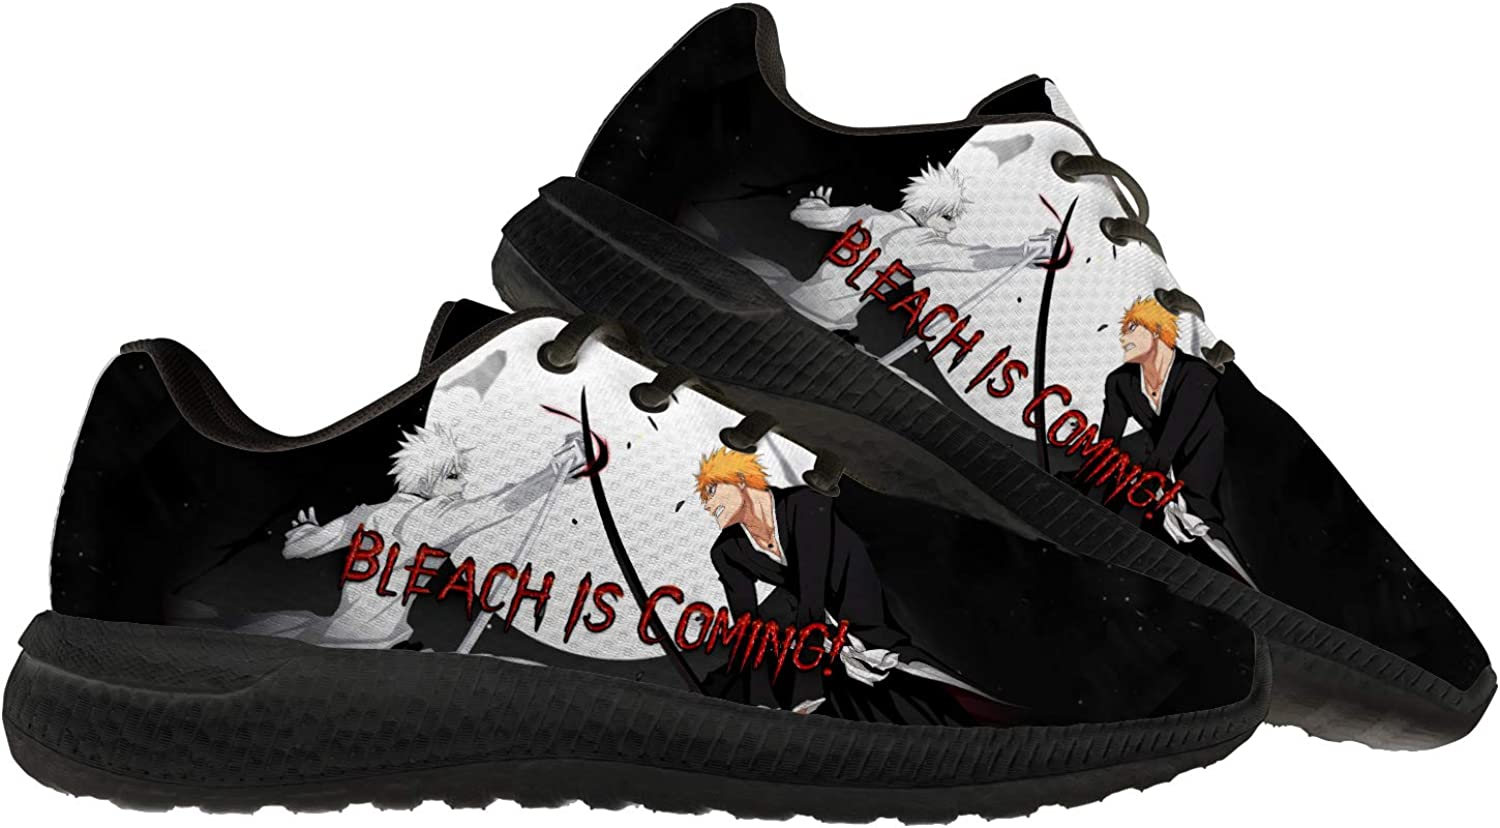 ADIGOW Japanese Anime Max 65% OFF Special price Shoes for Men Print Women Cosplay 3D